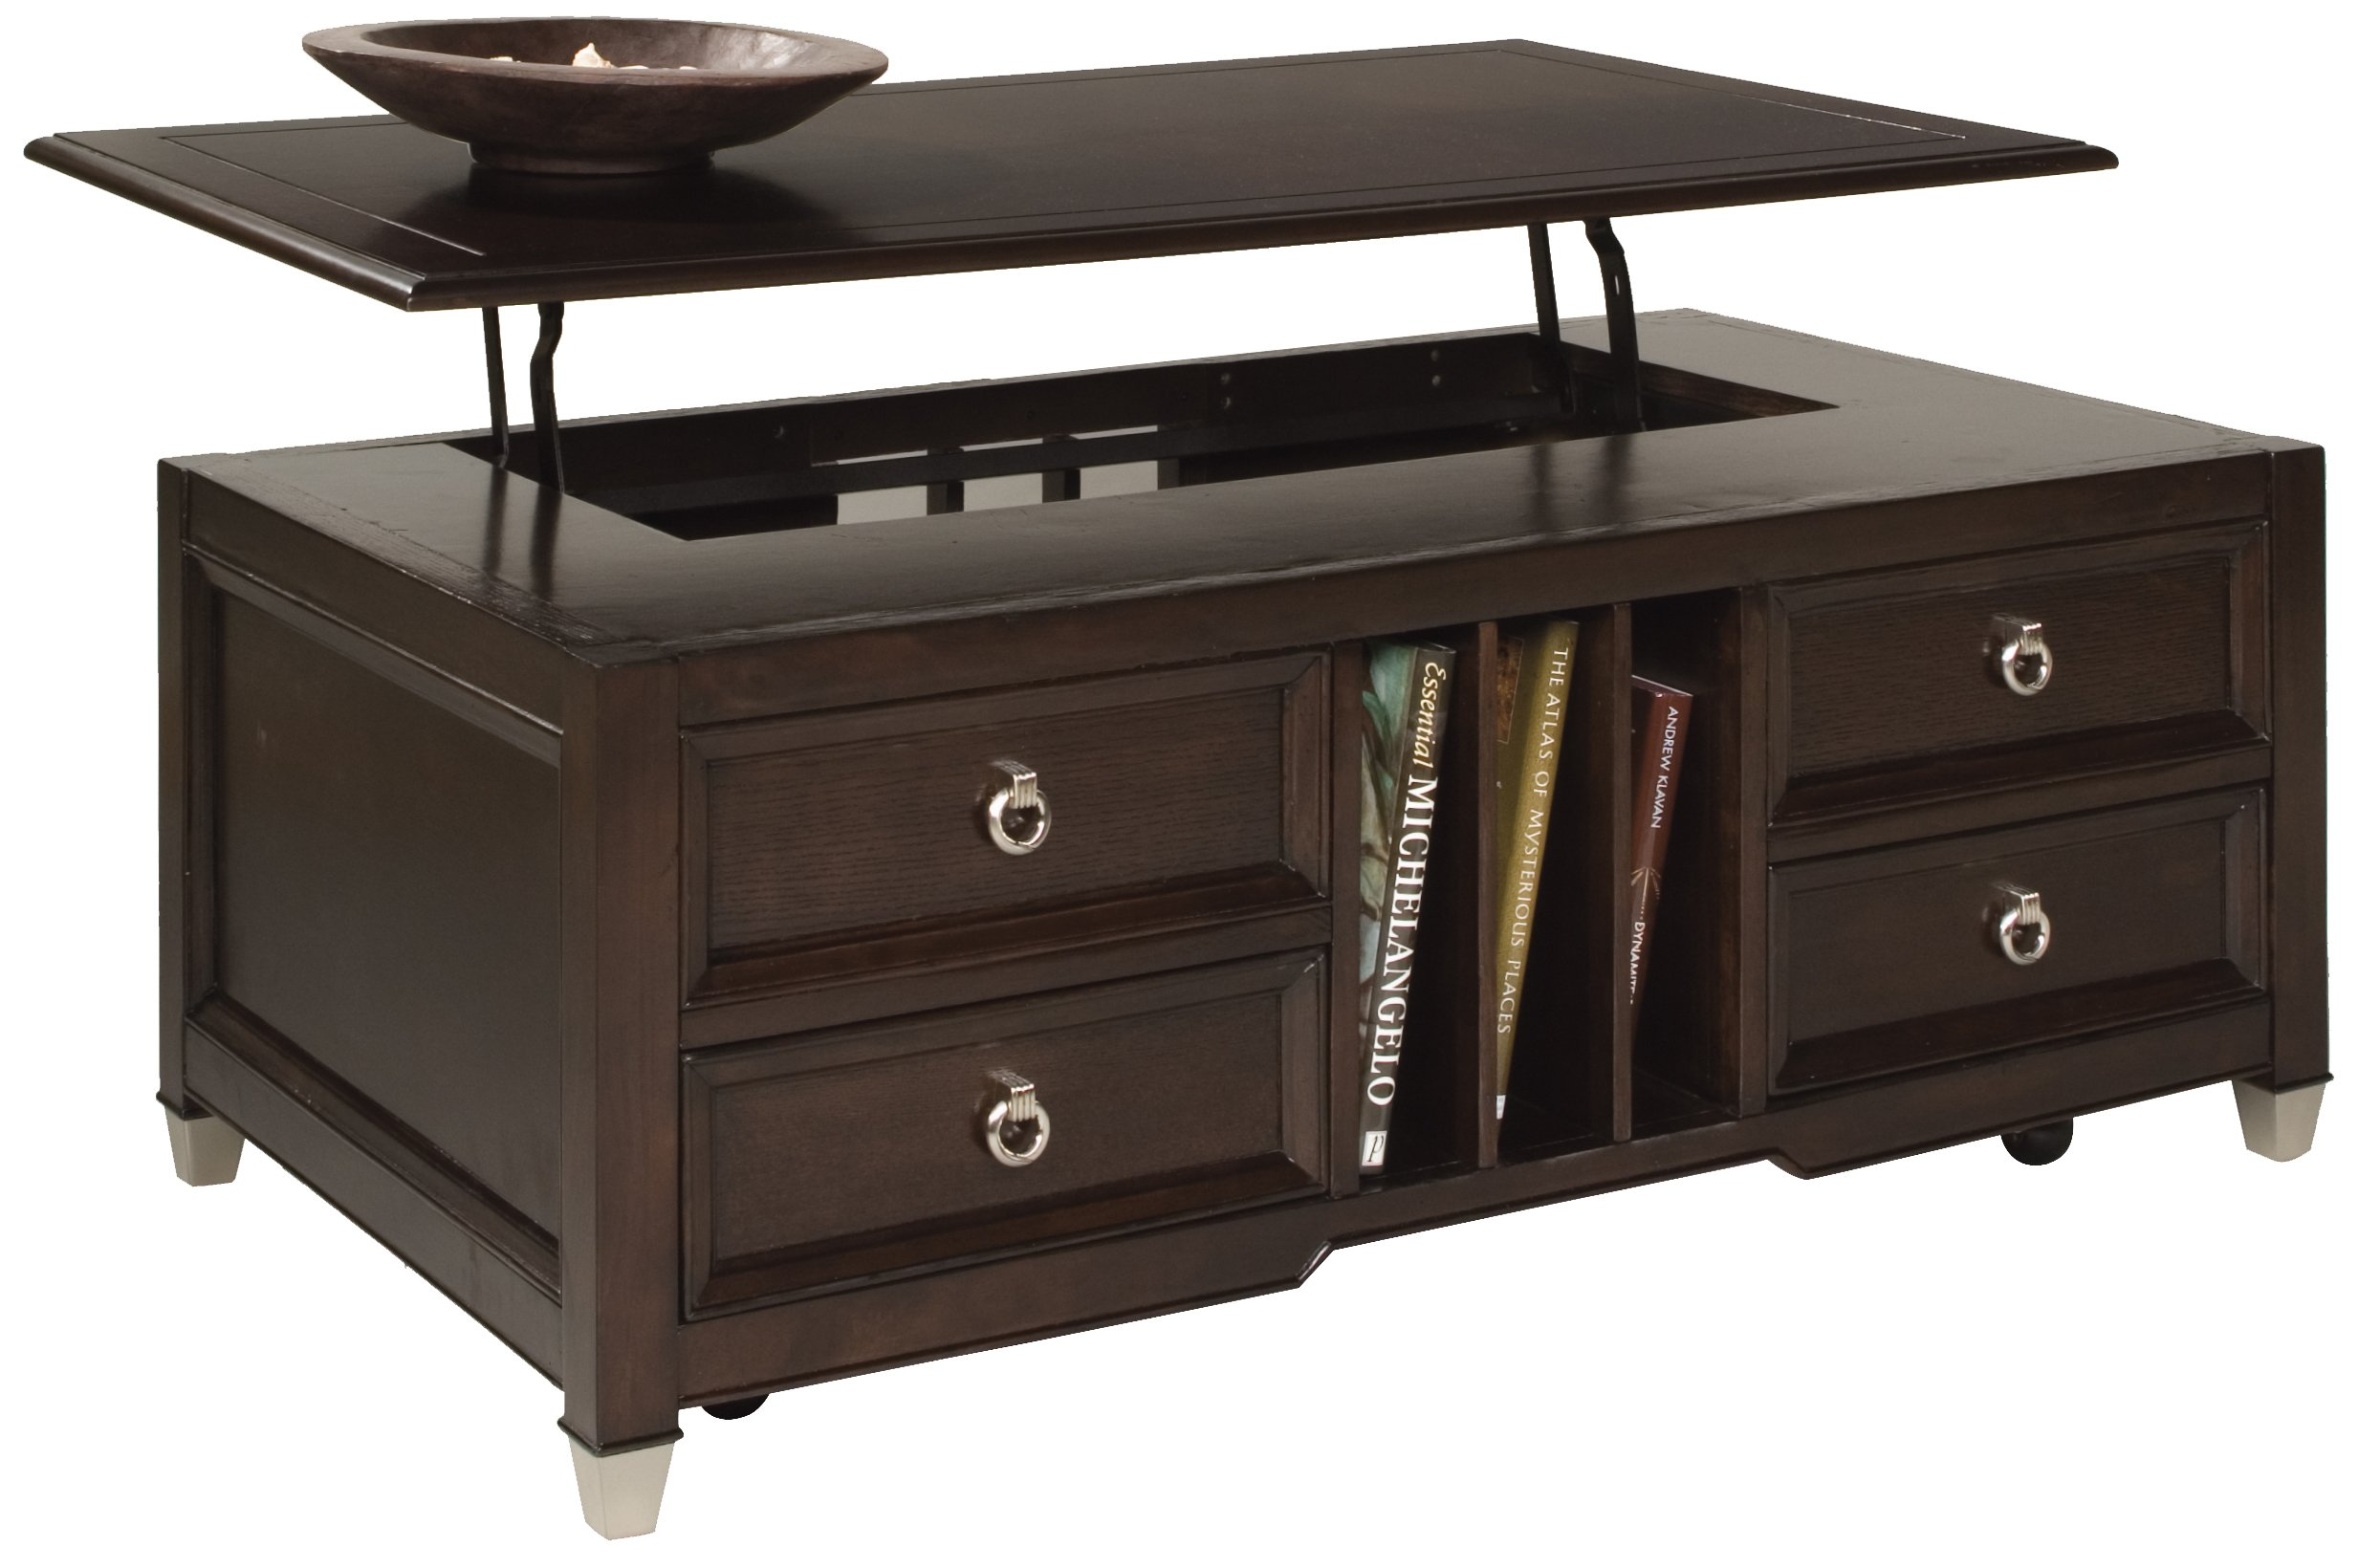 Wood brown Lift Top Coffee Table